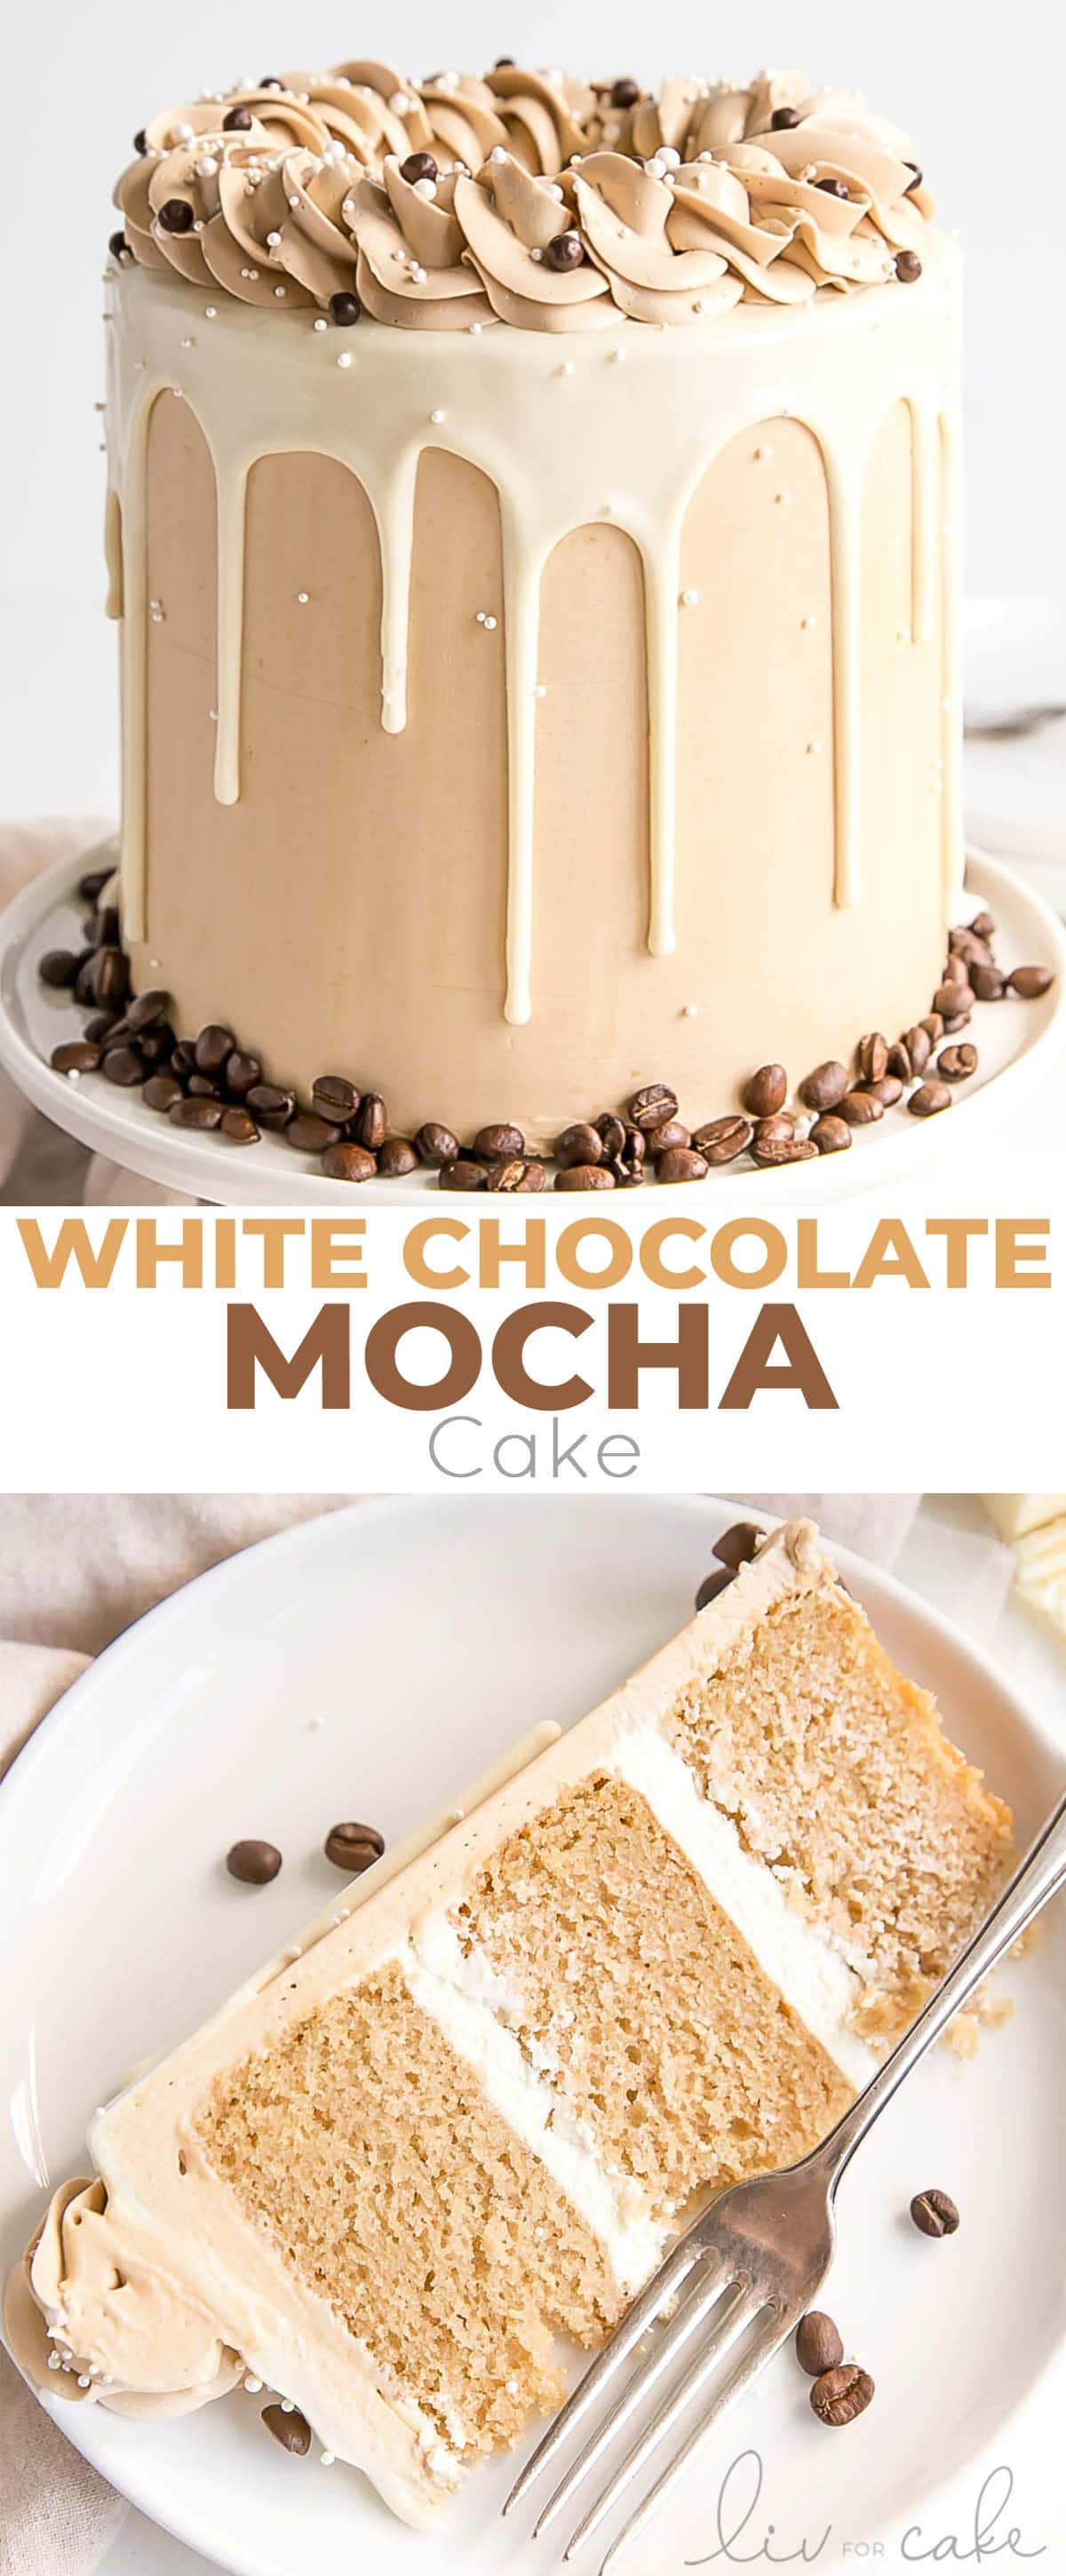 White chocolate mocha cake collage.